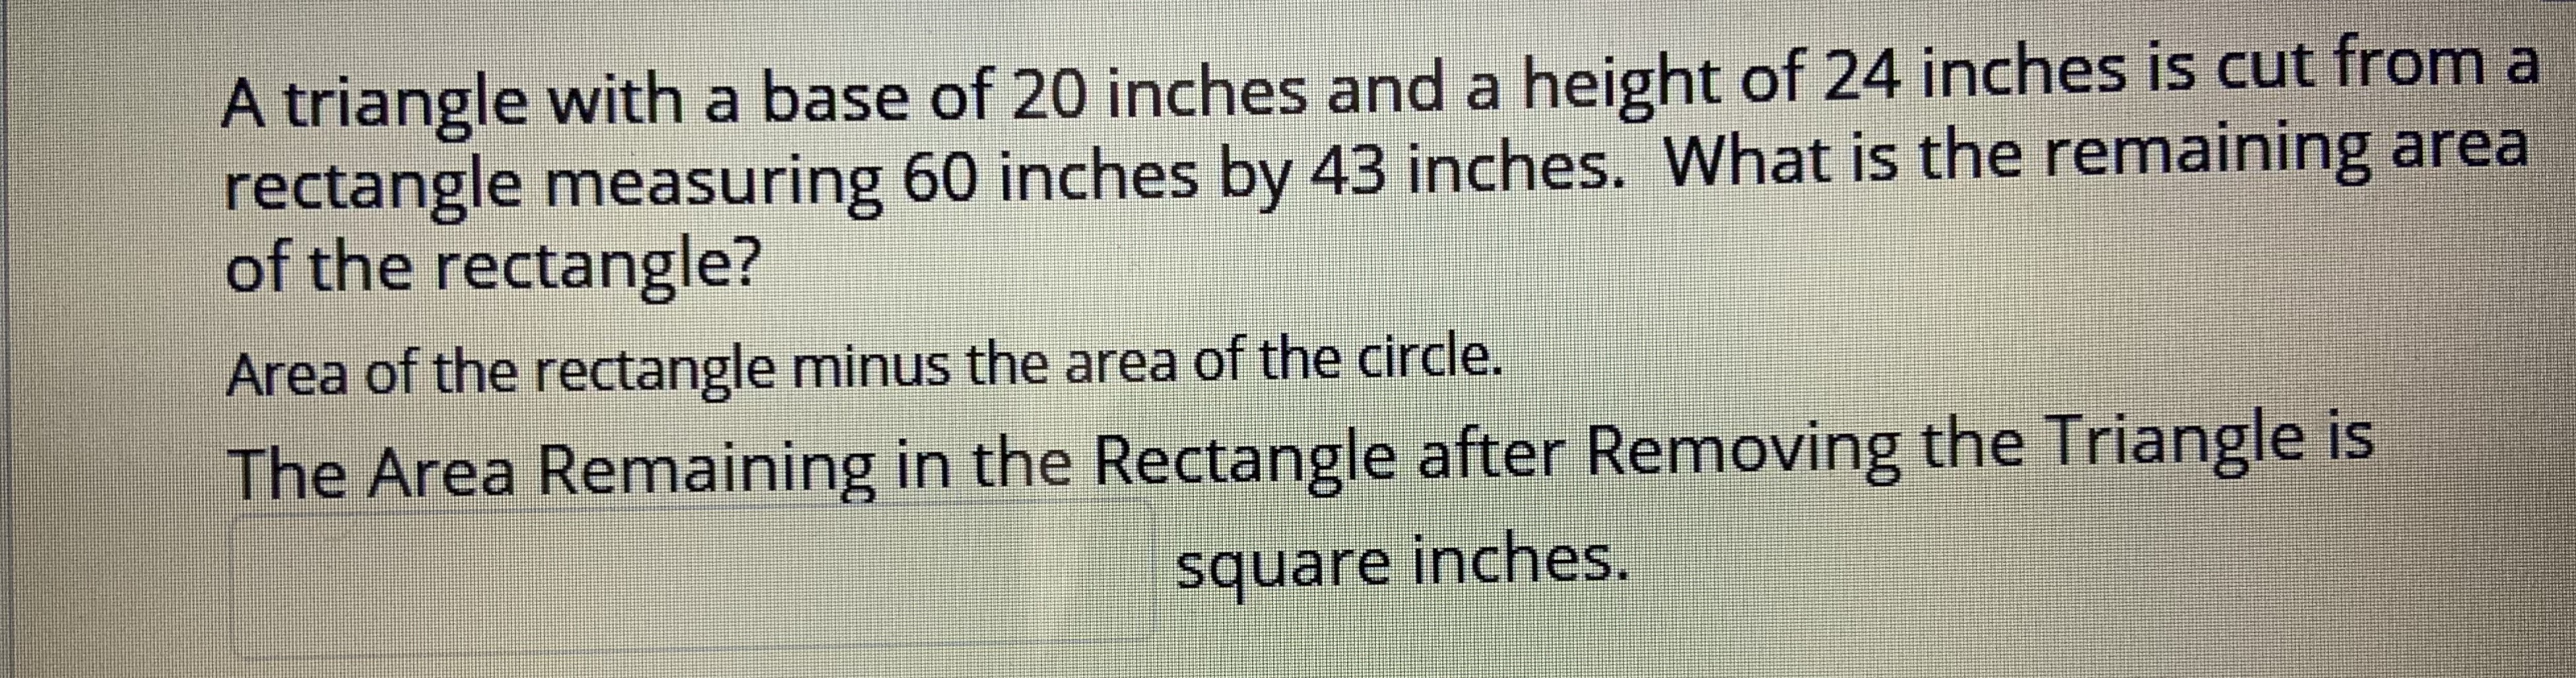 A triangle with a base of 20 inches and a height of 24 inches is cut from a rectangle measuring 60 inches by 43 inches. What is the remaining area of the rectangle? Area of the rectangle minus the area of the circle. The Area Remaining in the Rectangle after Removing the Triangle is square inches.